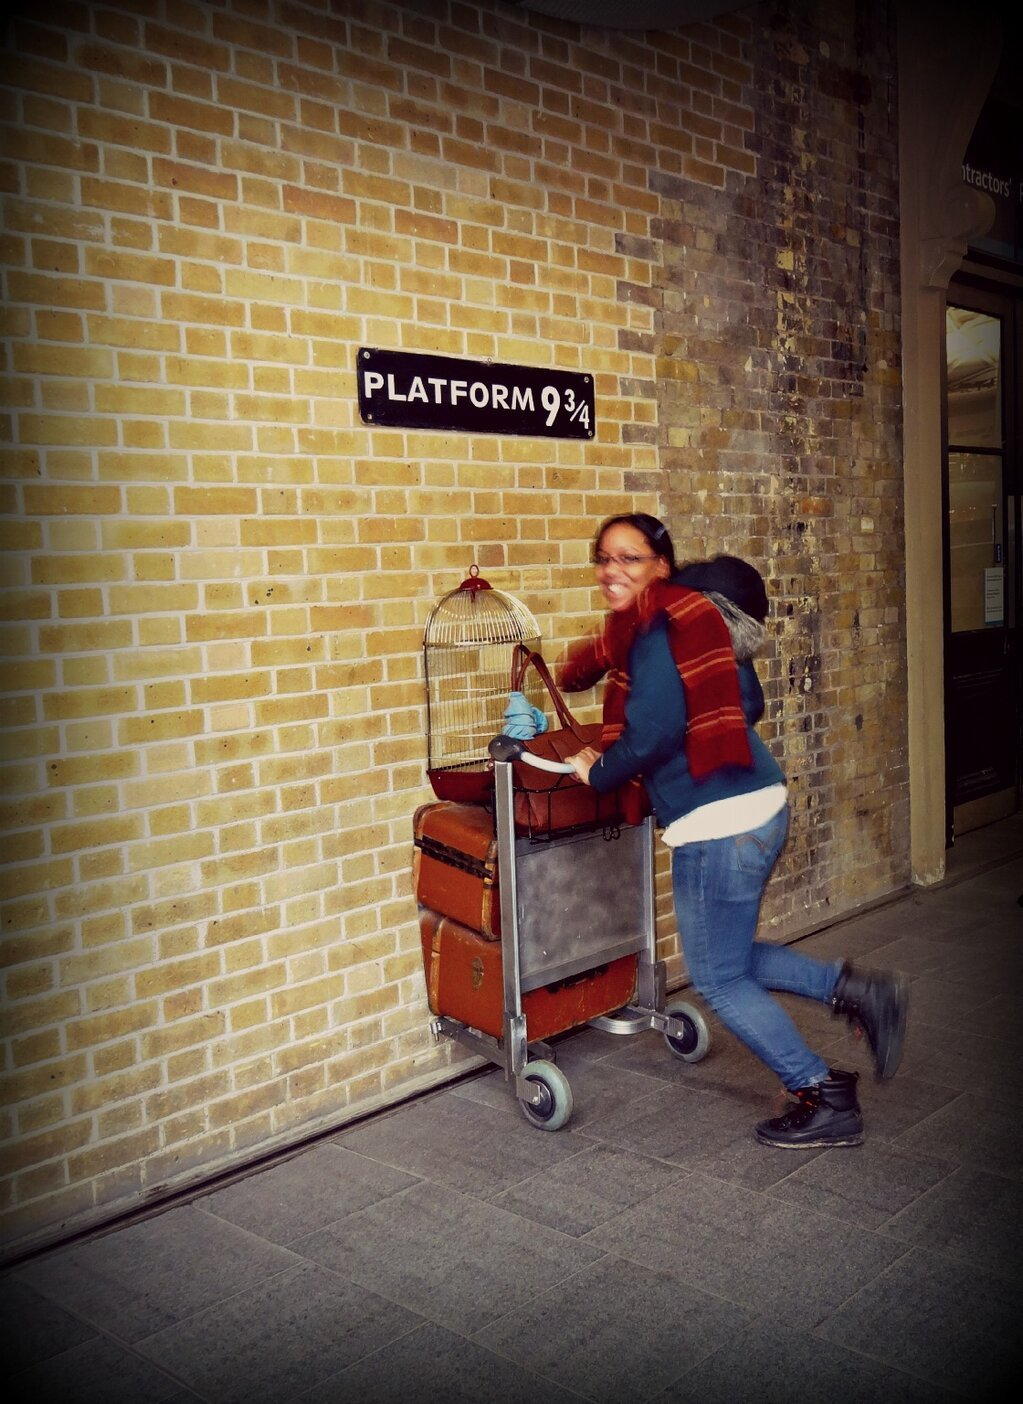 Candice Greene/ London, England  yours truly at platform 9 3/4's on my merry way to Hogwarts #London #England #studyabroad #stjglobal @stjglobal